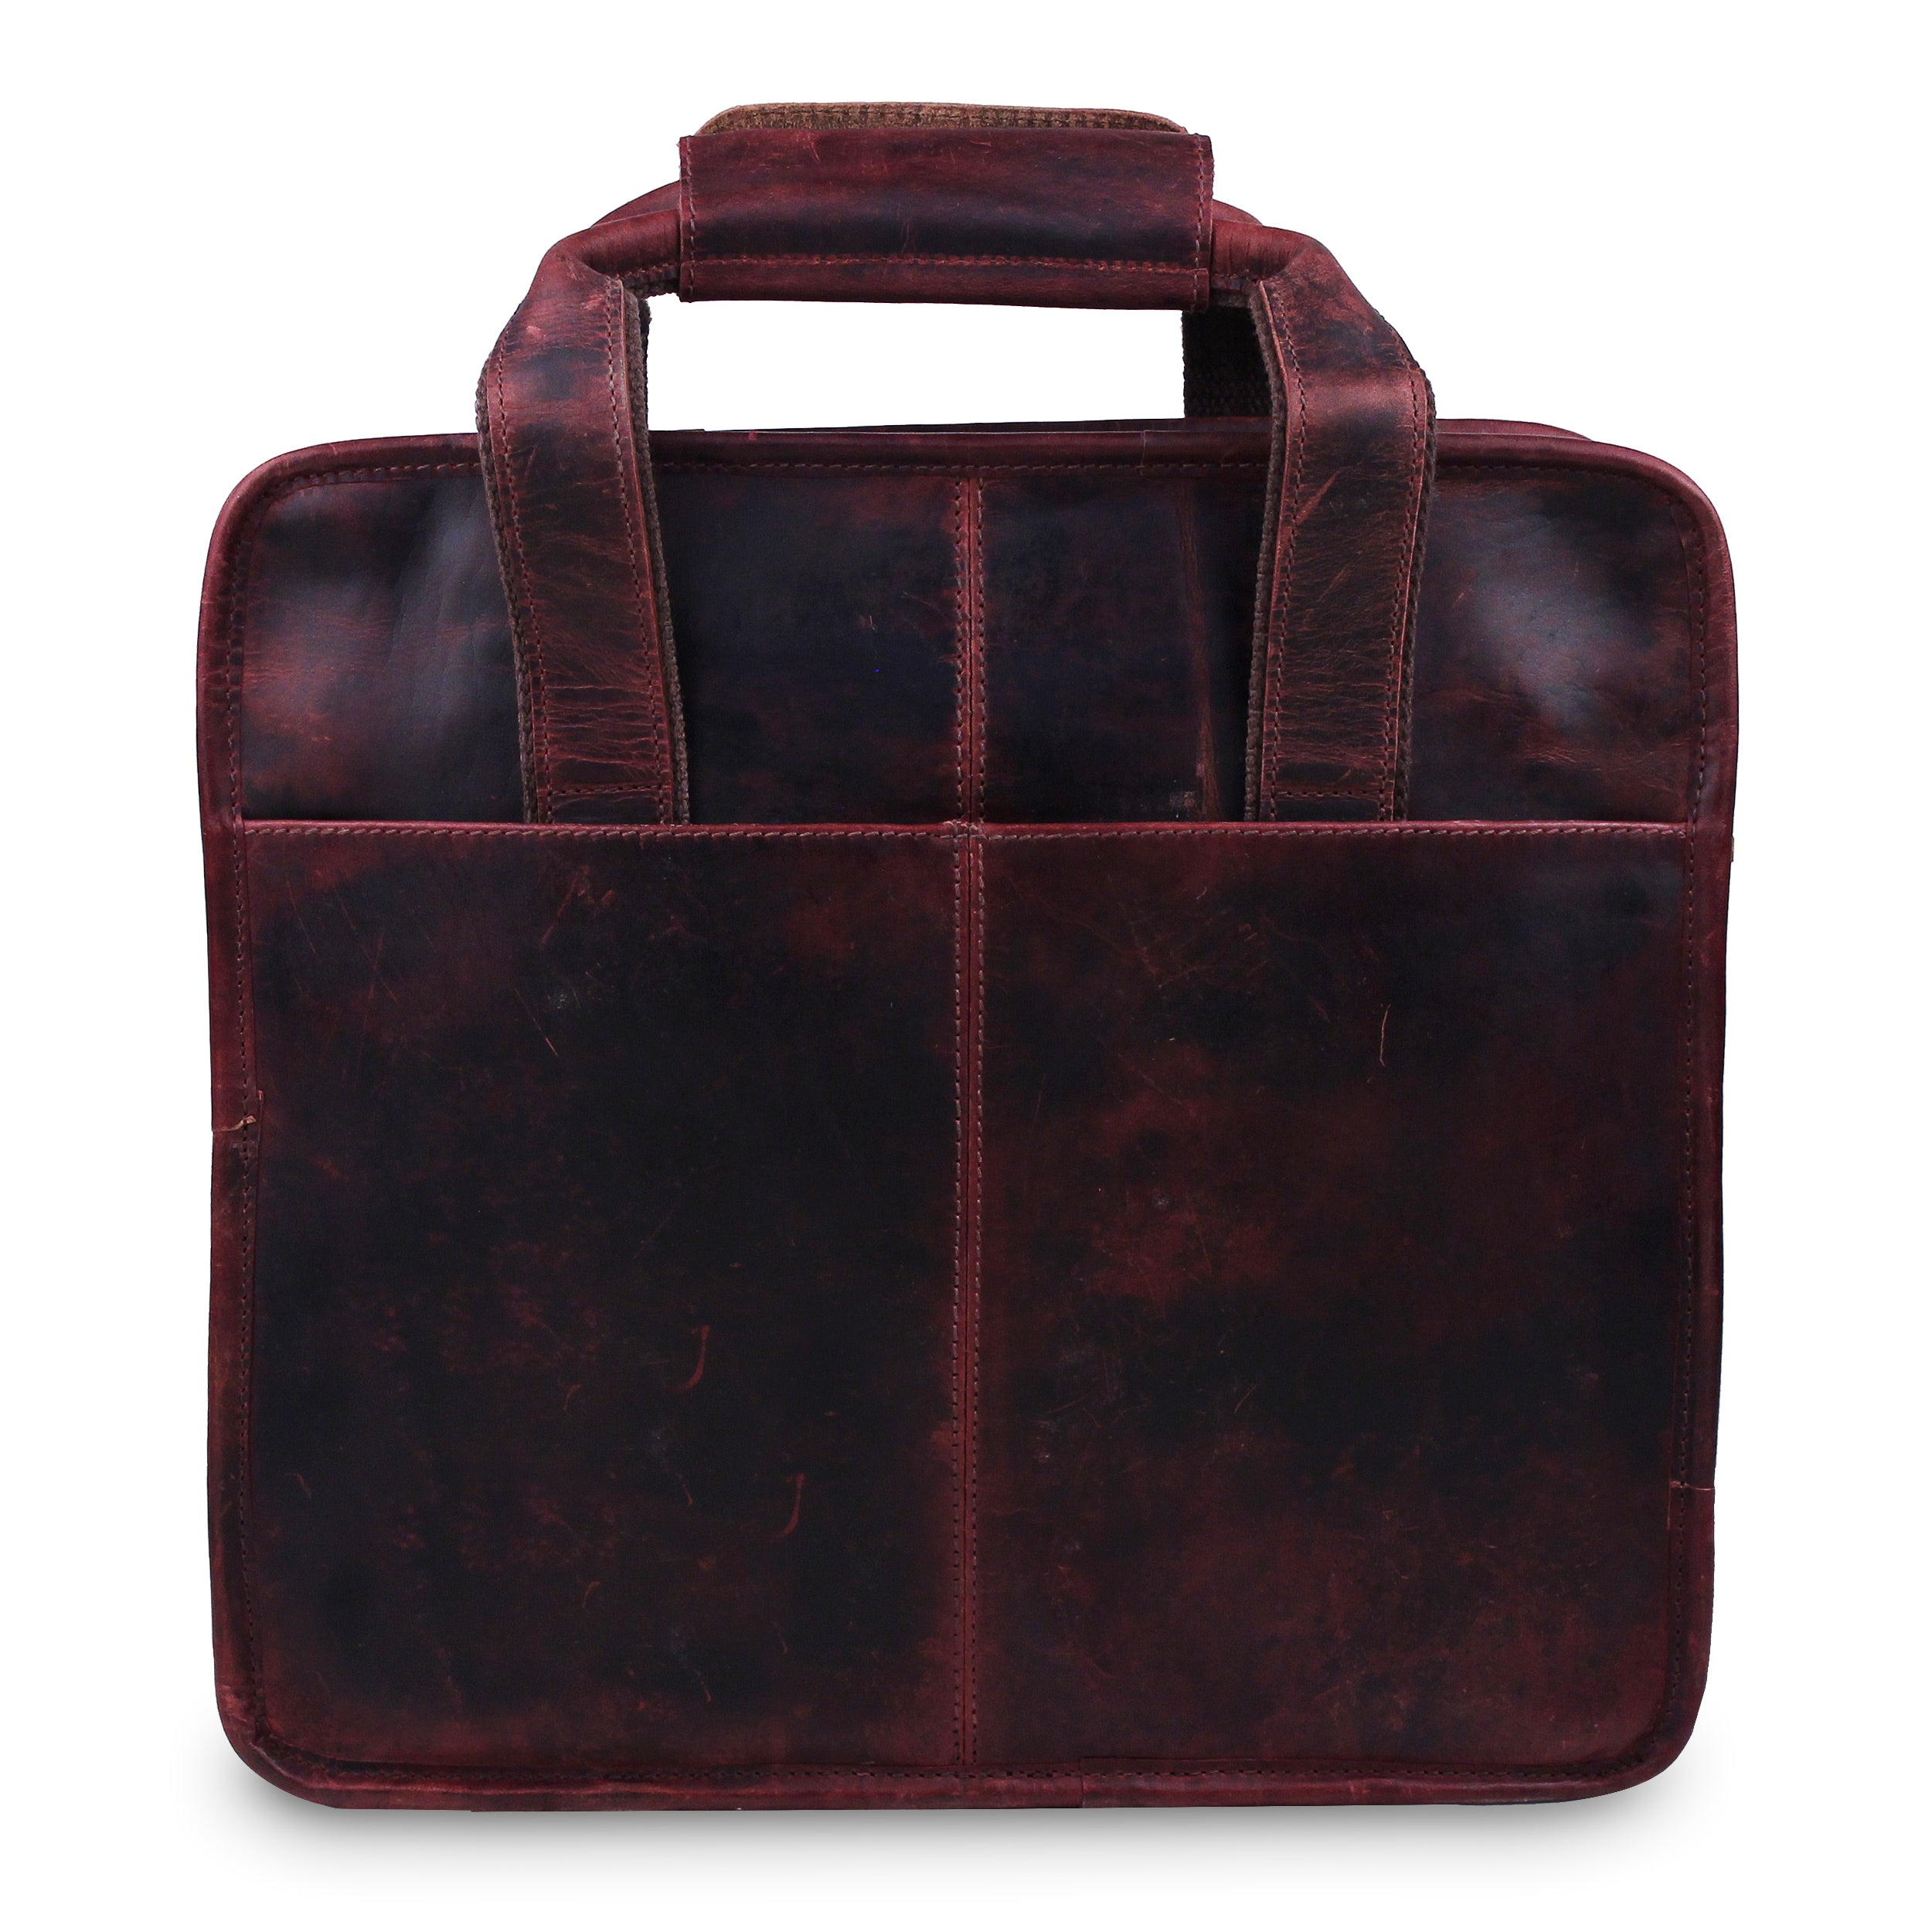 Large Briefcase Bag with Top Handle and Laptop Padding